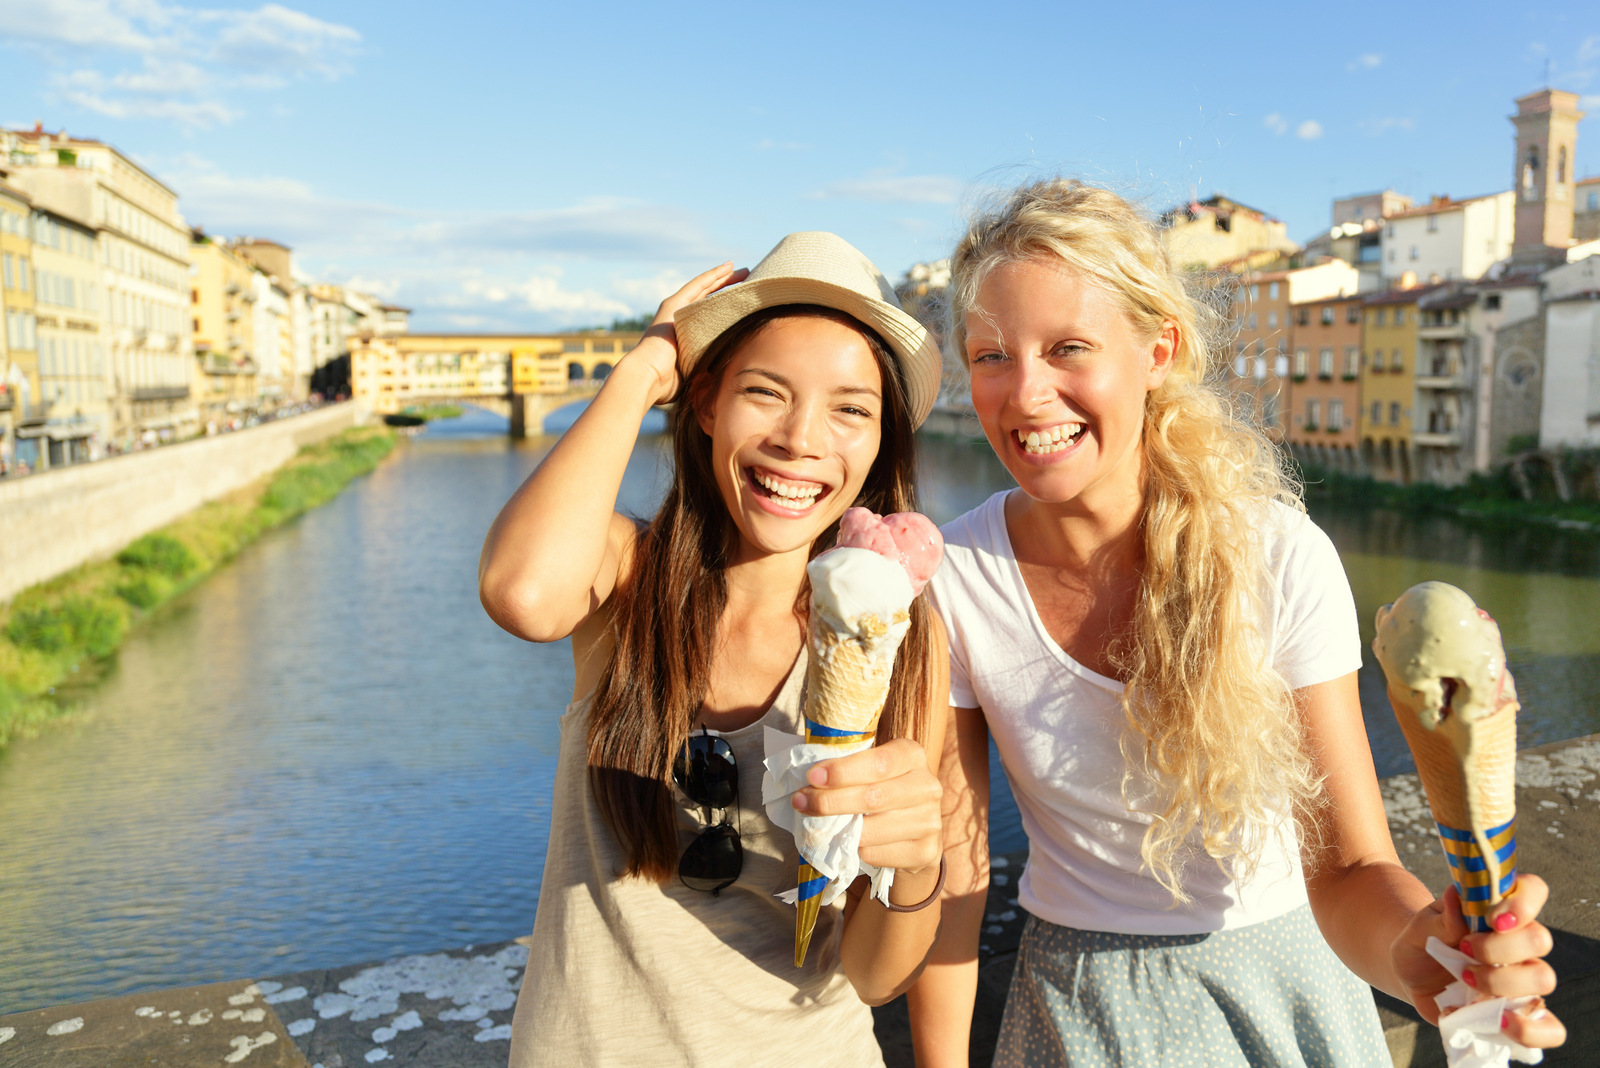 Summer Program - Travel And Tourism | SPI Study Abroad: High School Programs in Spain, France, Italy, Costa Rica & China